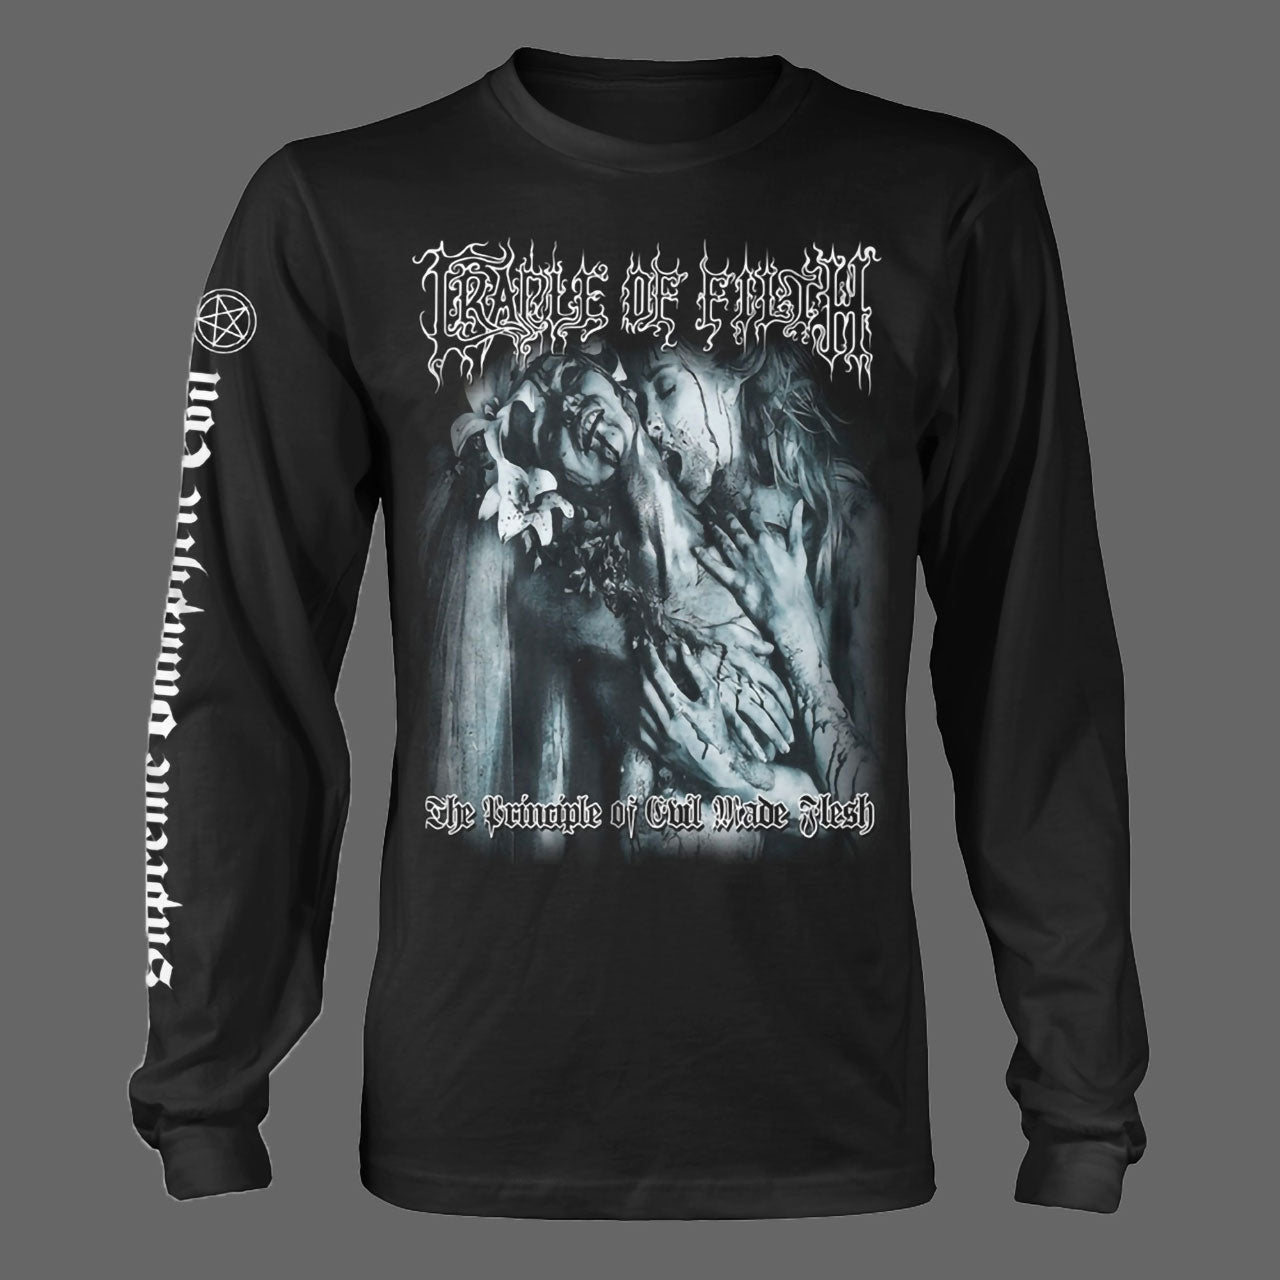 Cradle of Filth - The Principle of Evil Made Flesh (Long Sleeve T-Shirt)